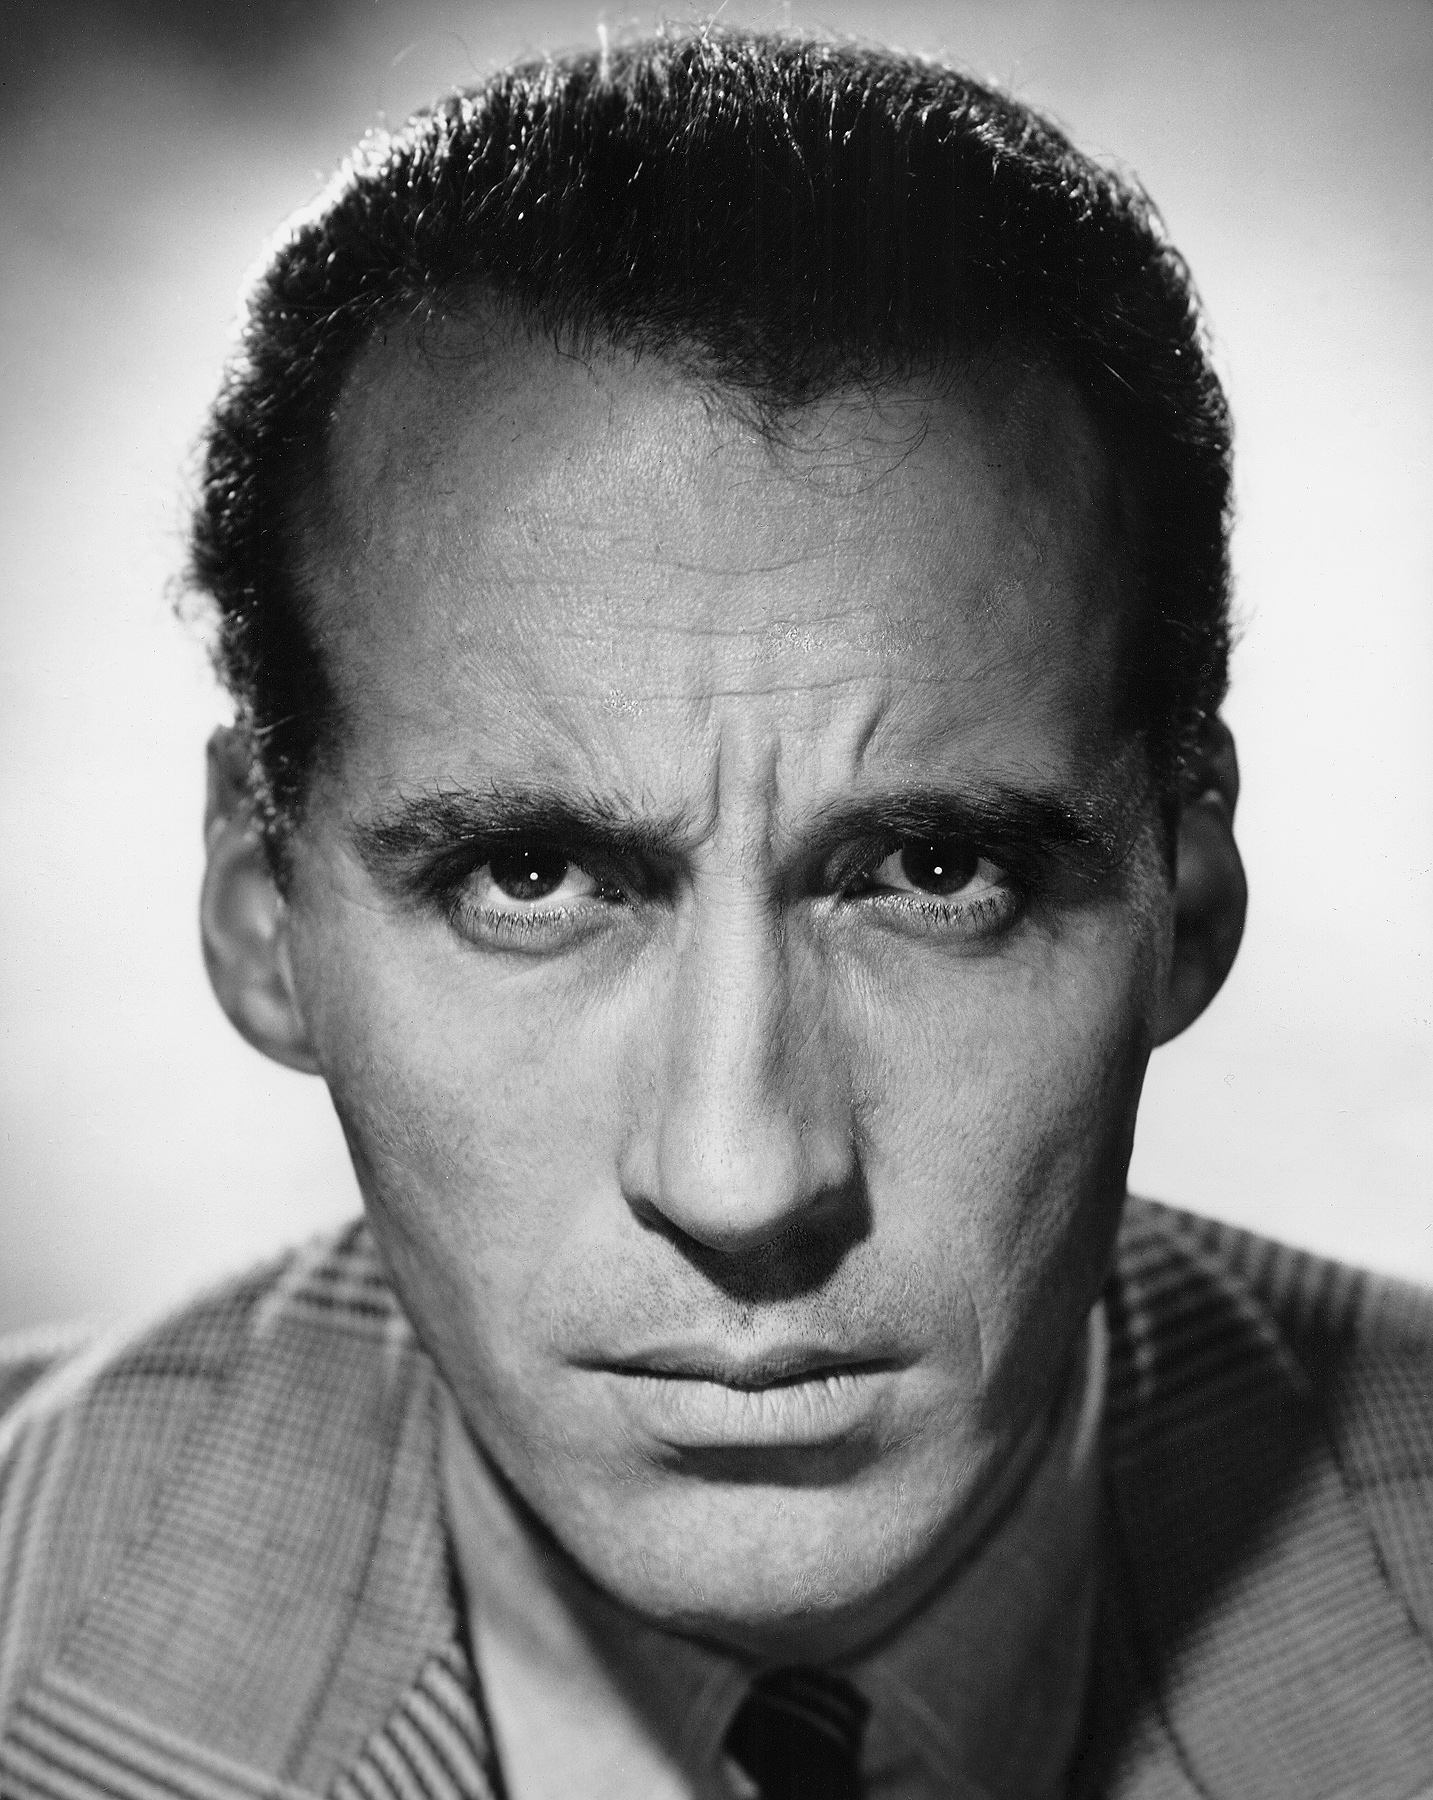 Christopher Lee, 1922-2015 / Boing Boing